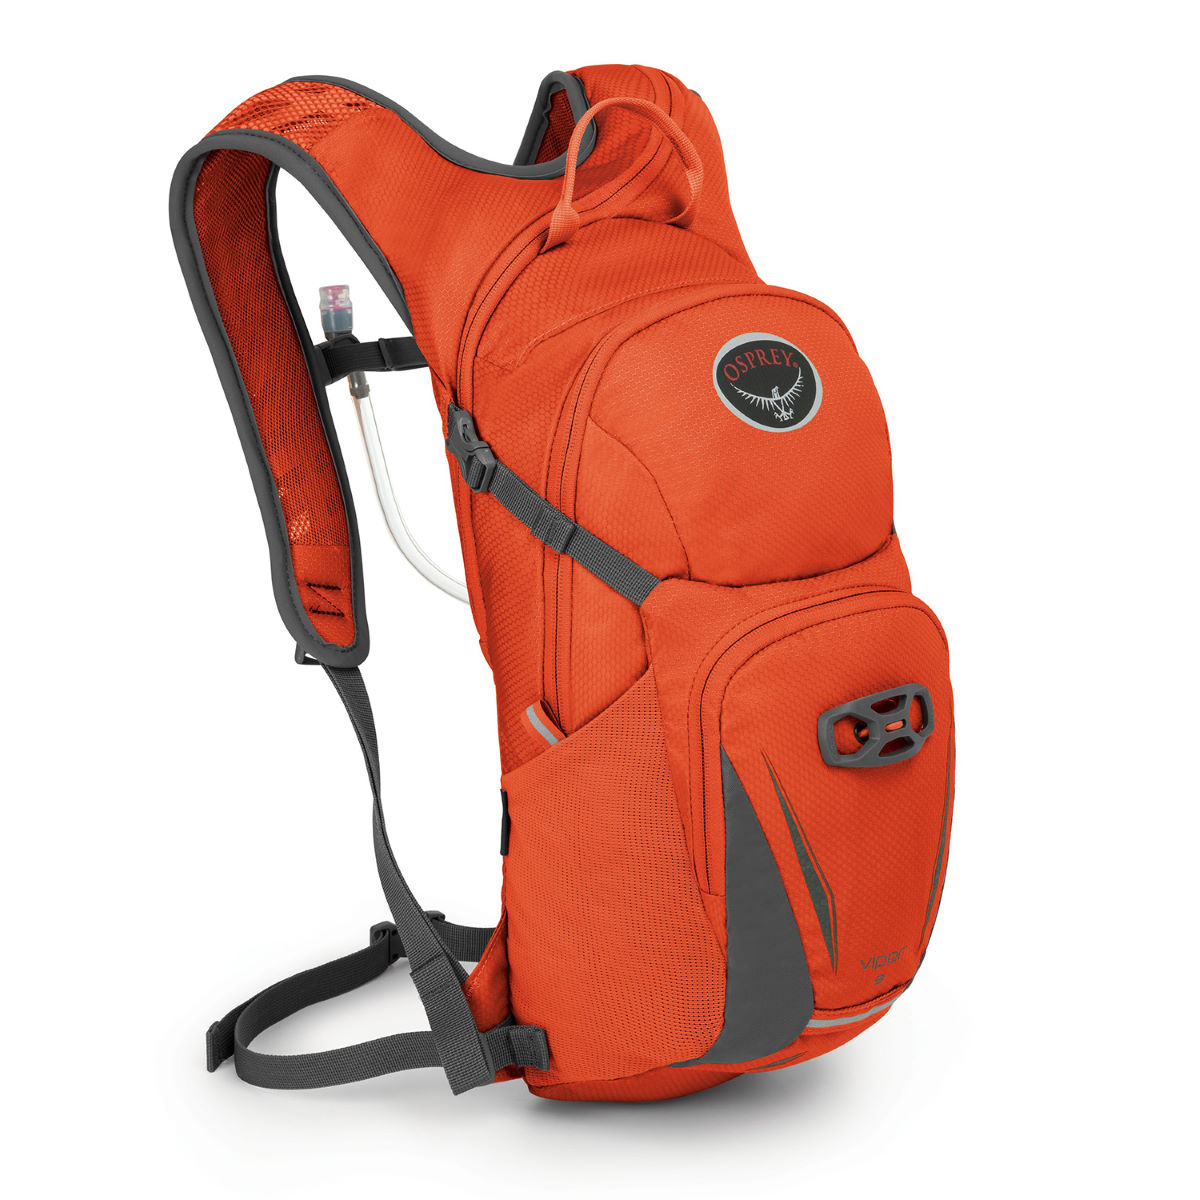 Sac d'hydratation Osprey Viper 9 - Taille unique Orange